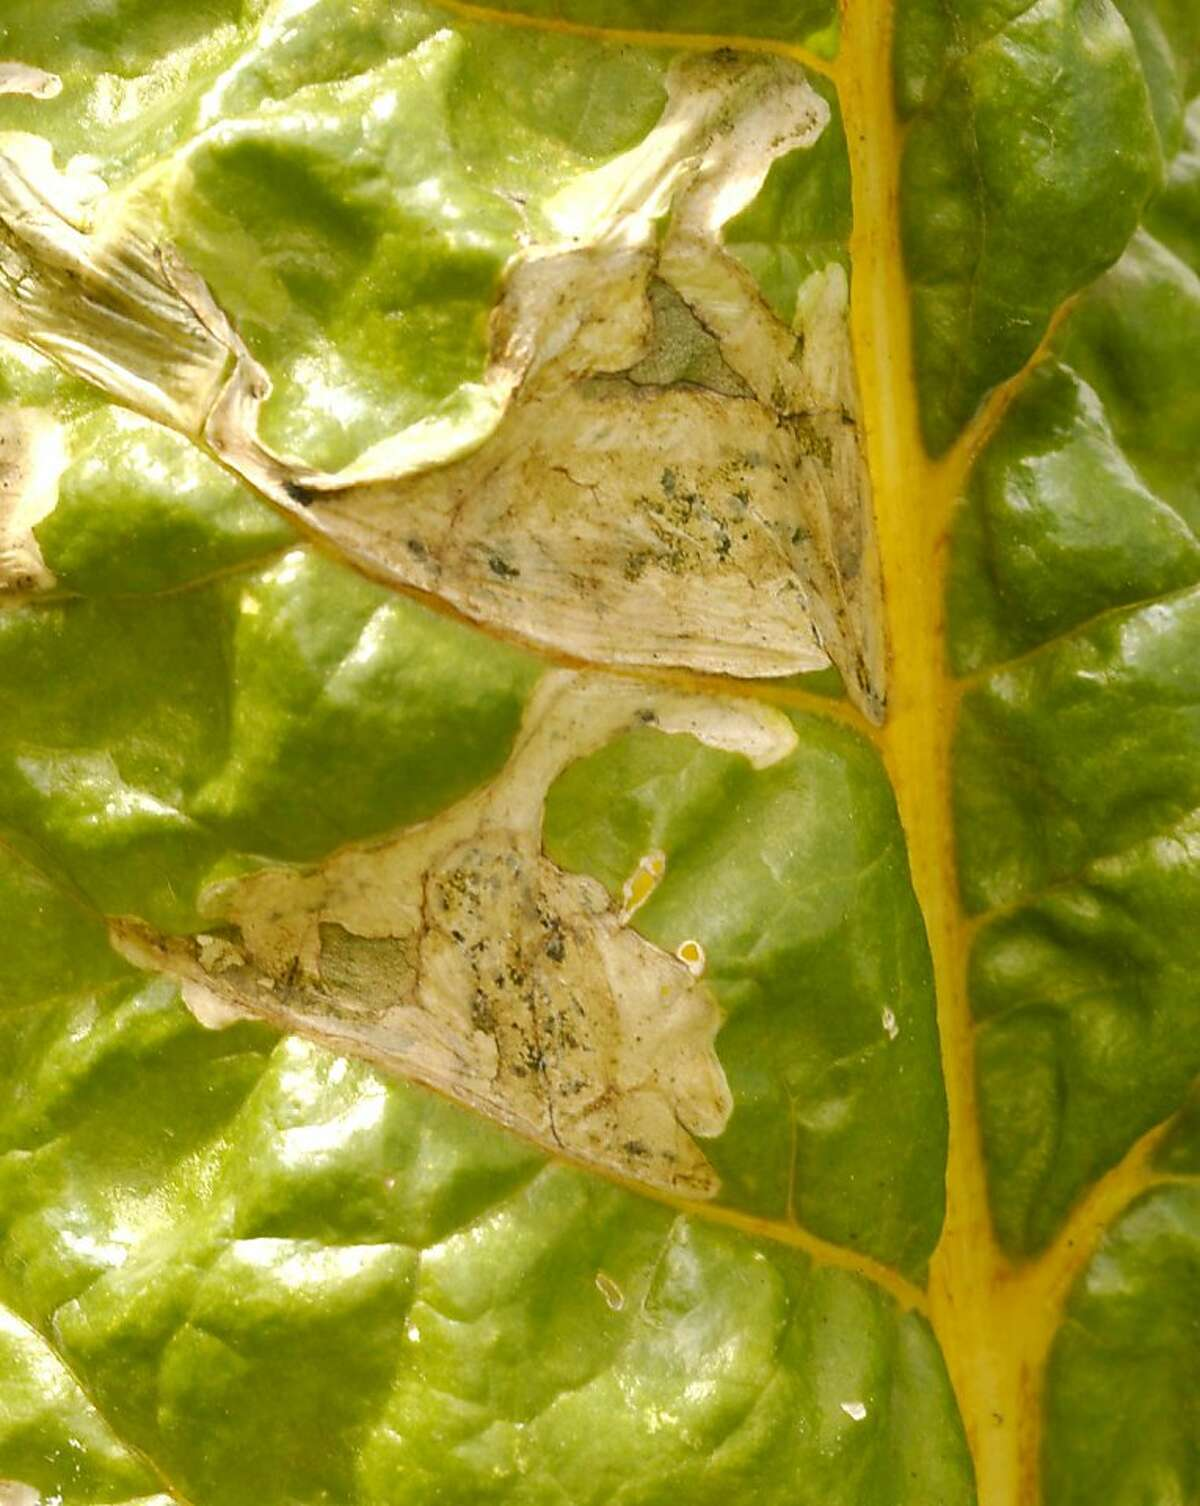 Beet leafminers feed inside chard leaves, causing ugly and unappetizing blotches.